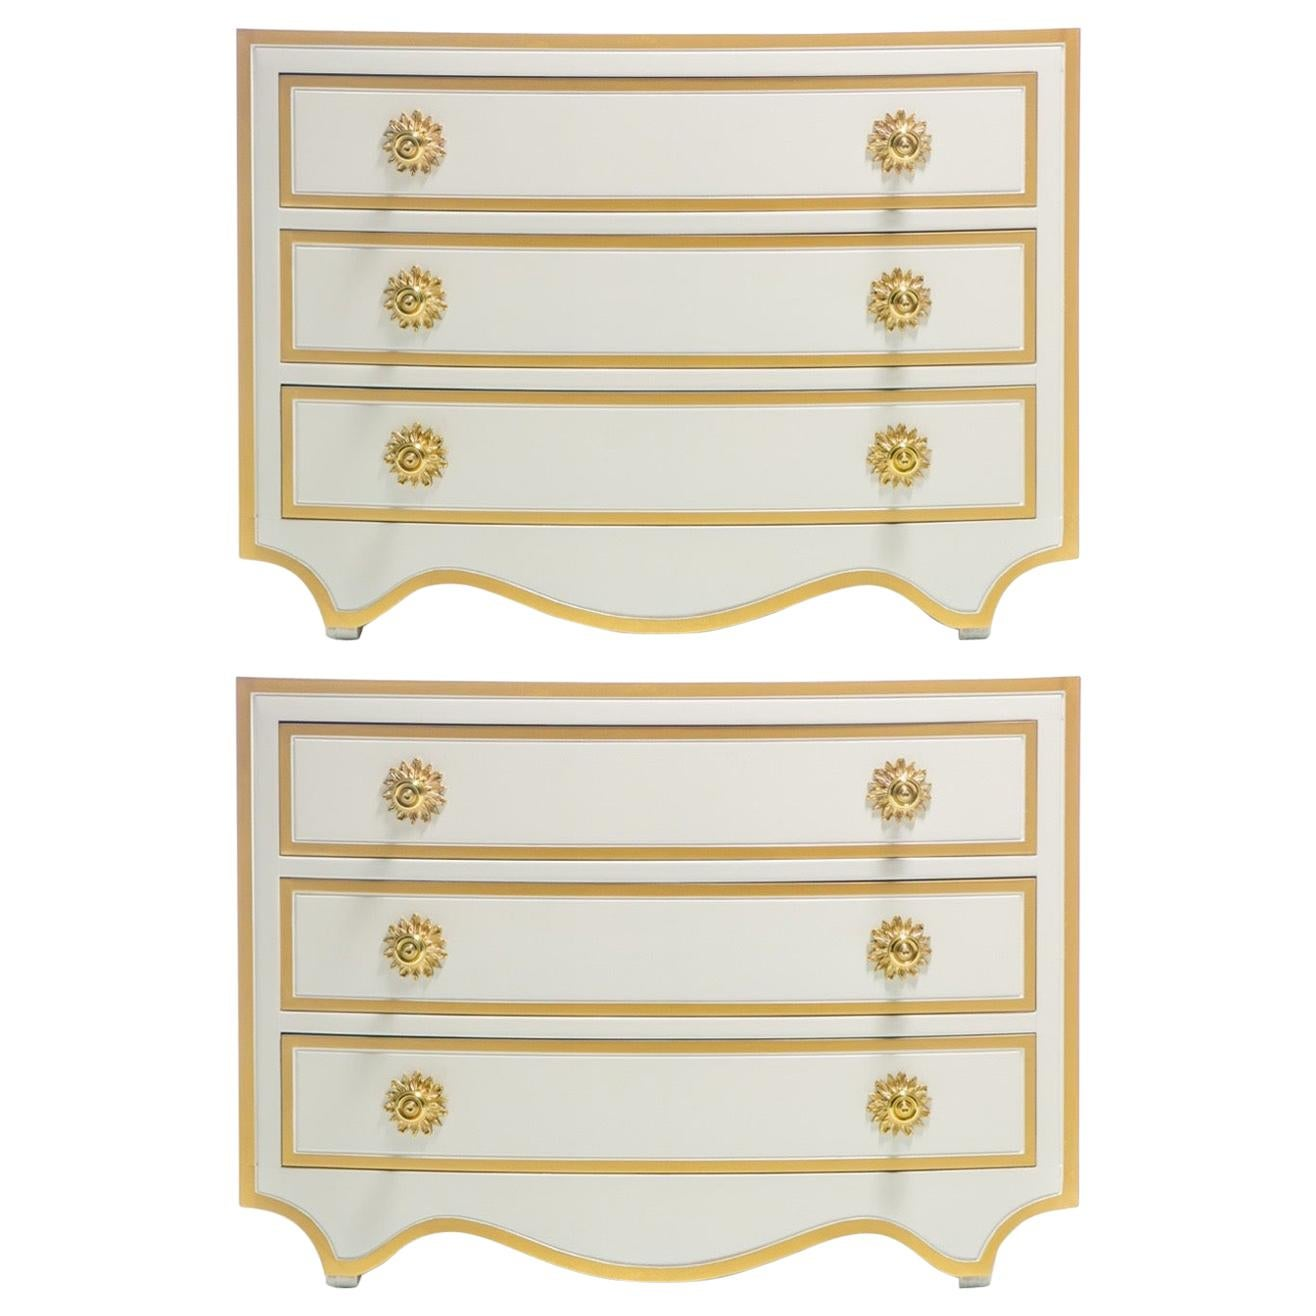 Pair of Dorothy Draper Viennese Collection Chests Lacquered in Ivory, circa 1963